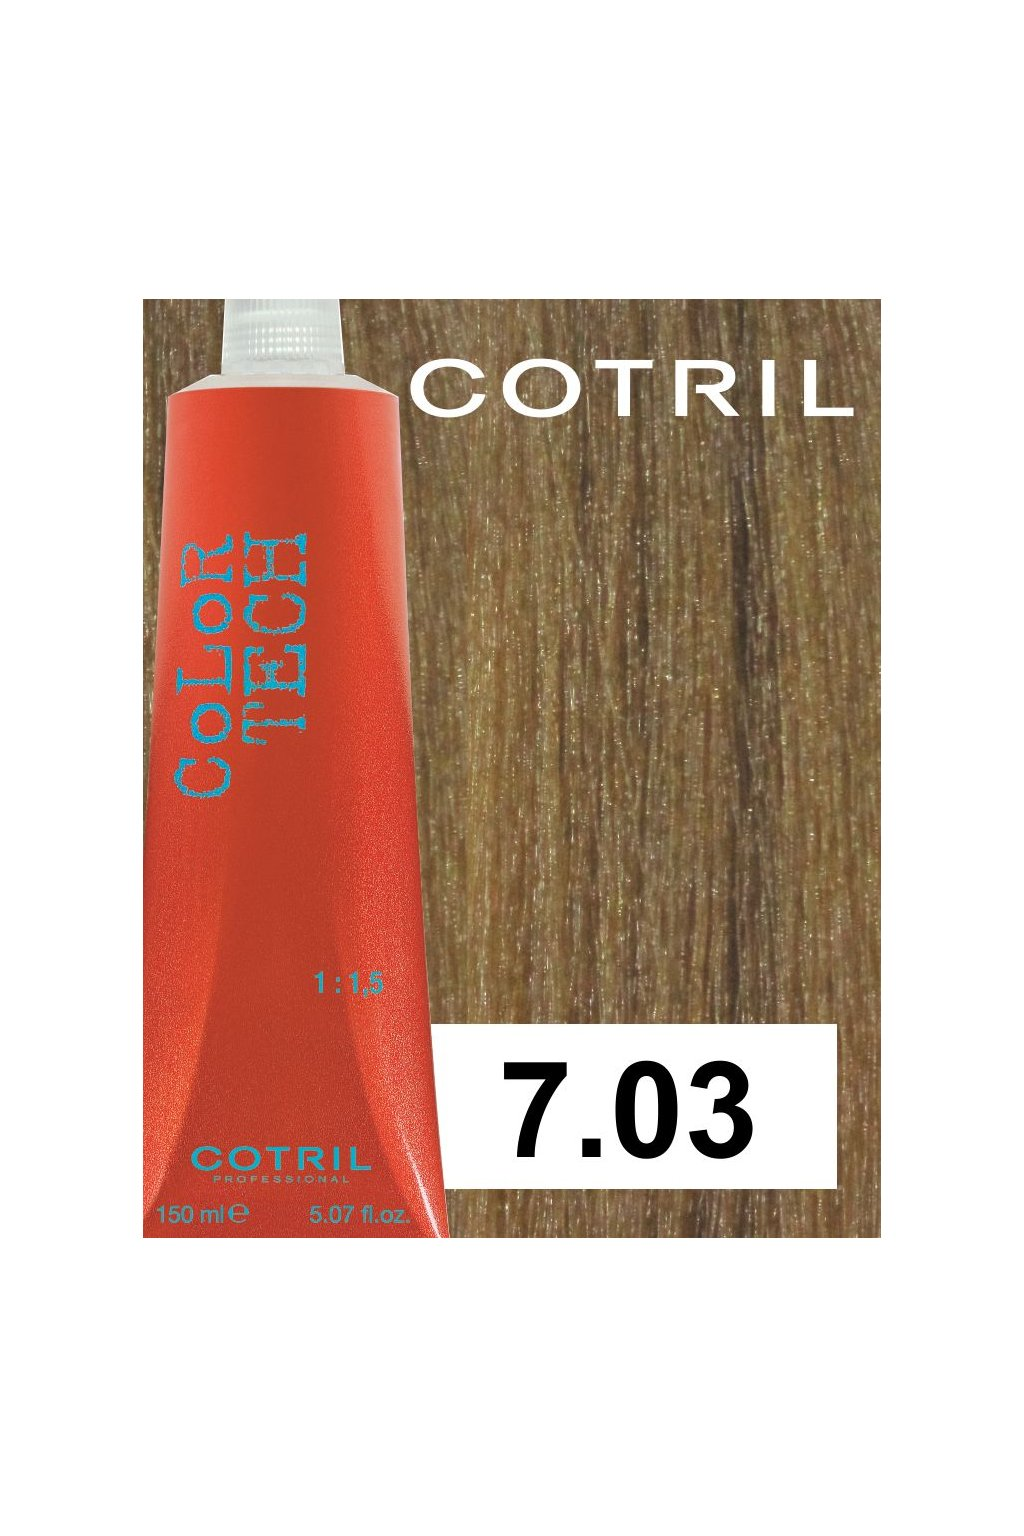 7 03 ct cotril